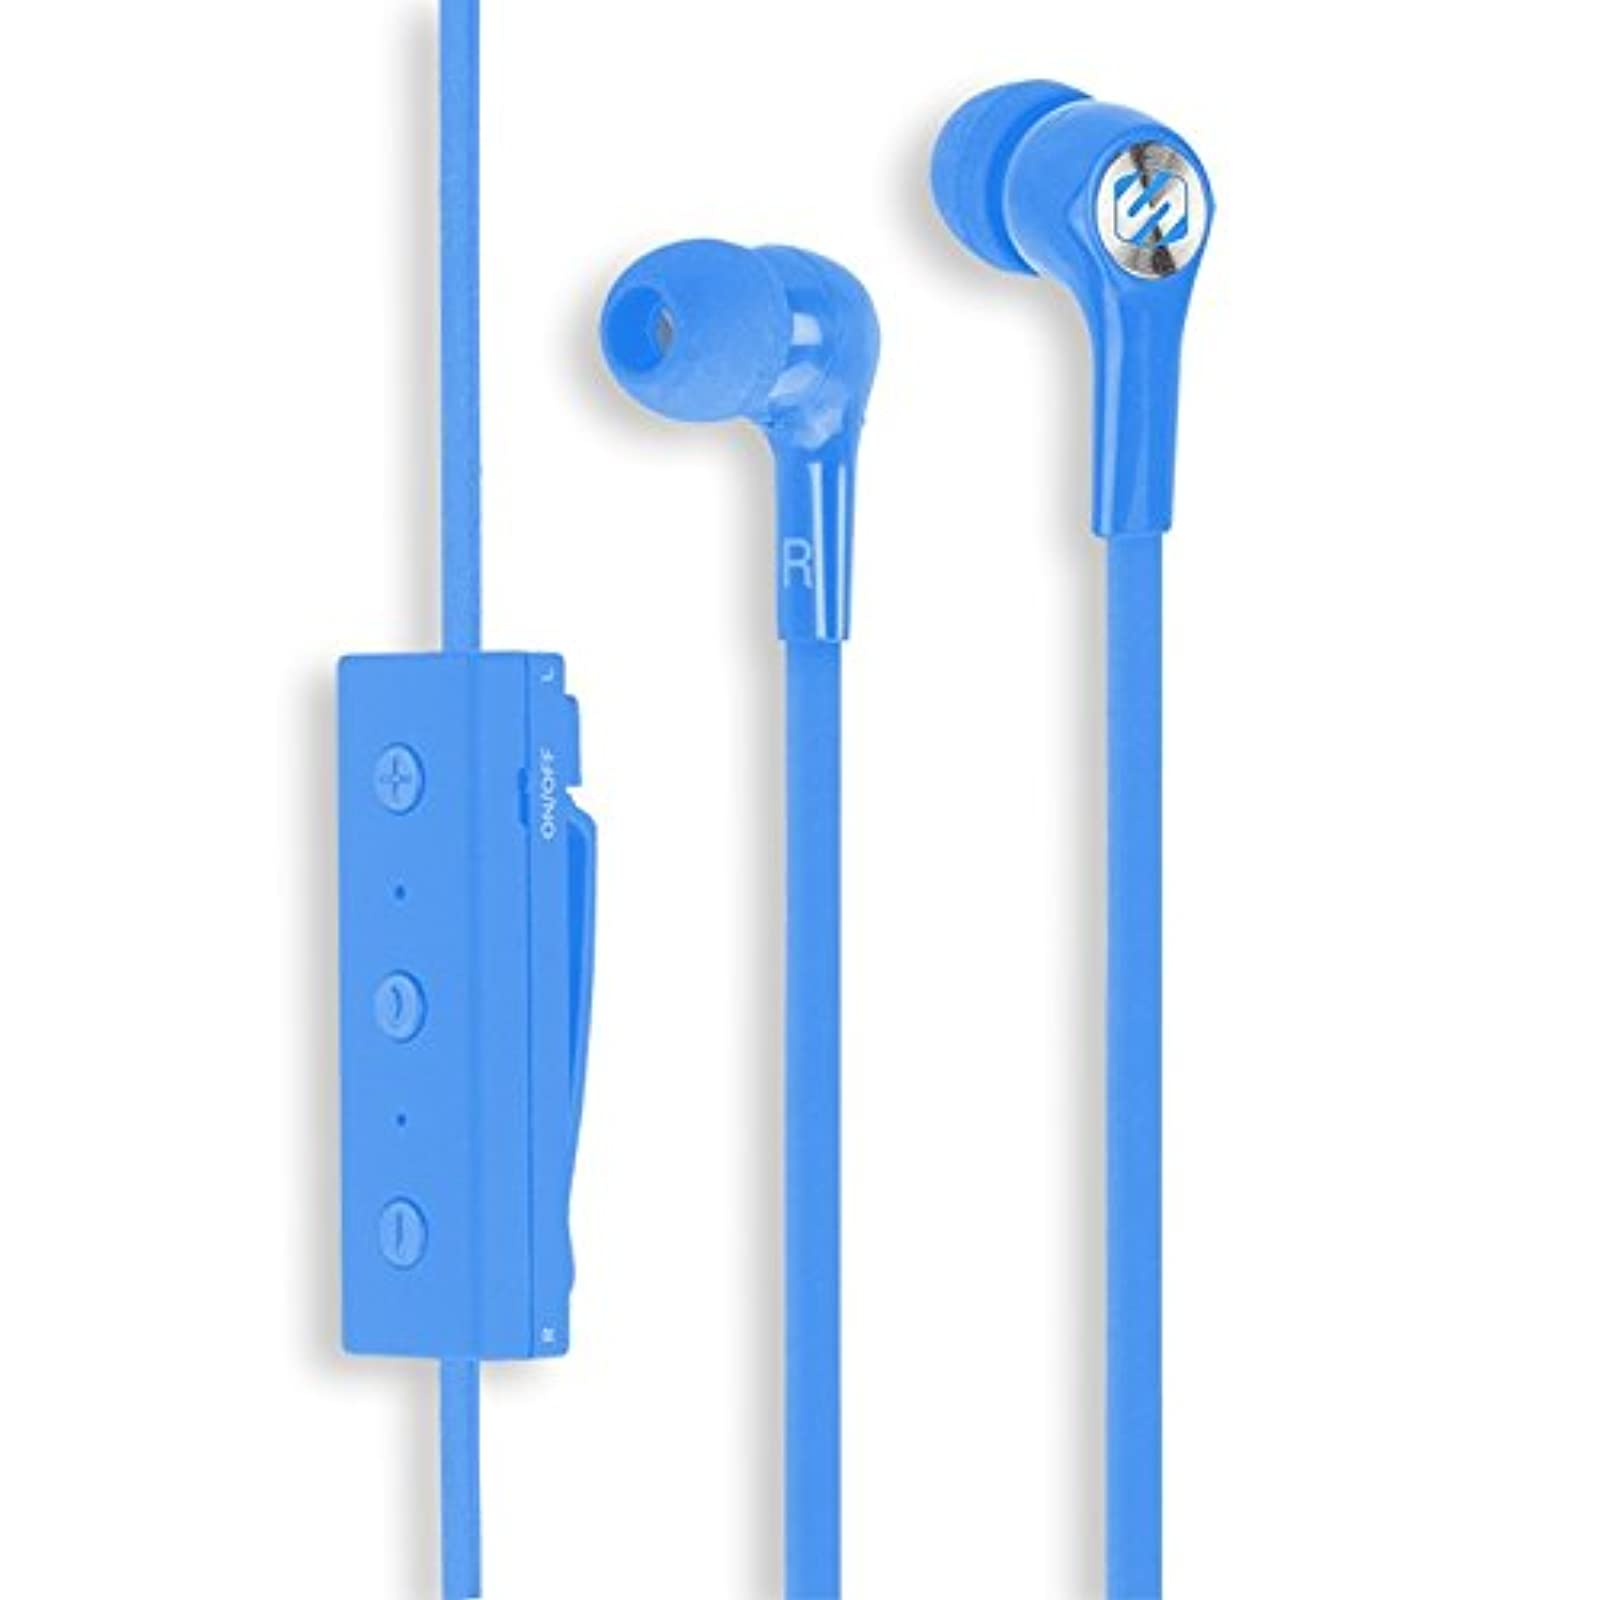 Scosche BT100BL Rechargeable Bluetooth Wireless Earbuds With Microphone Music He